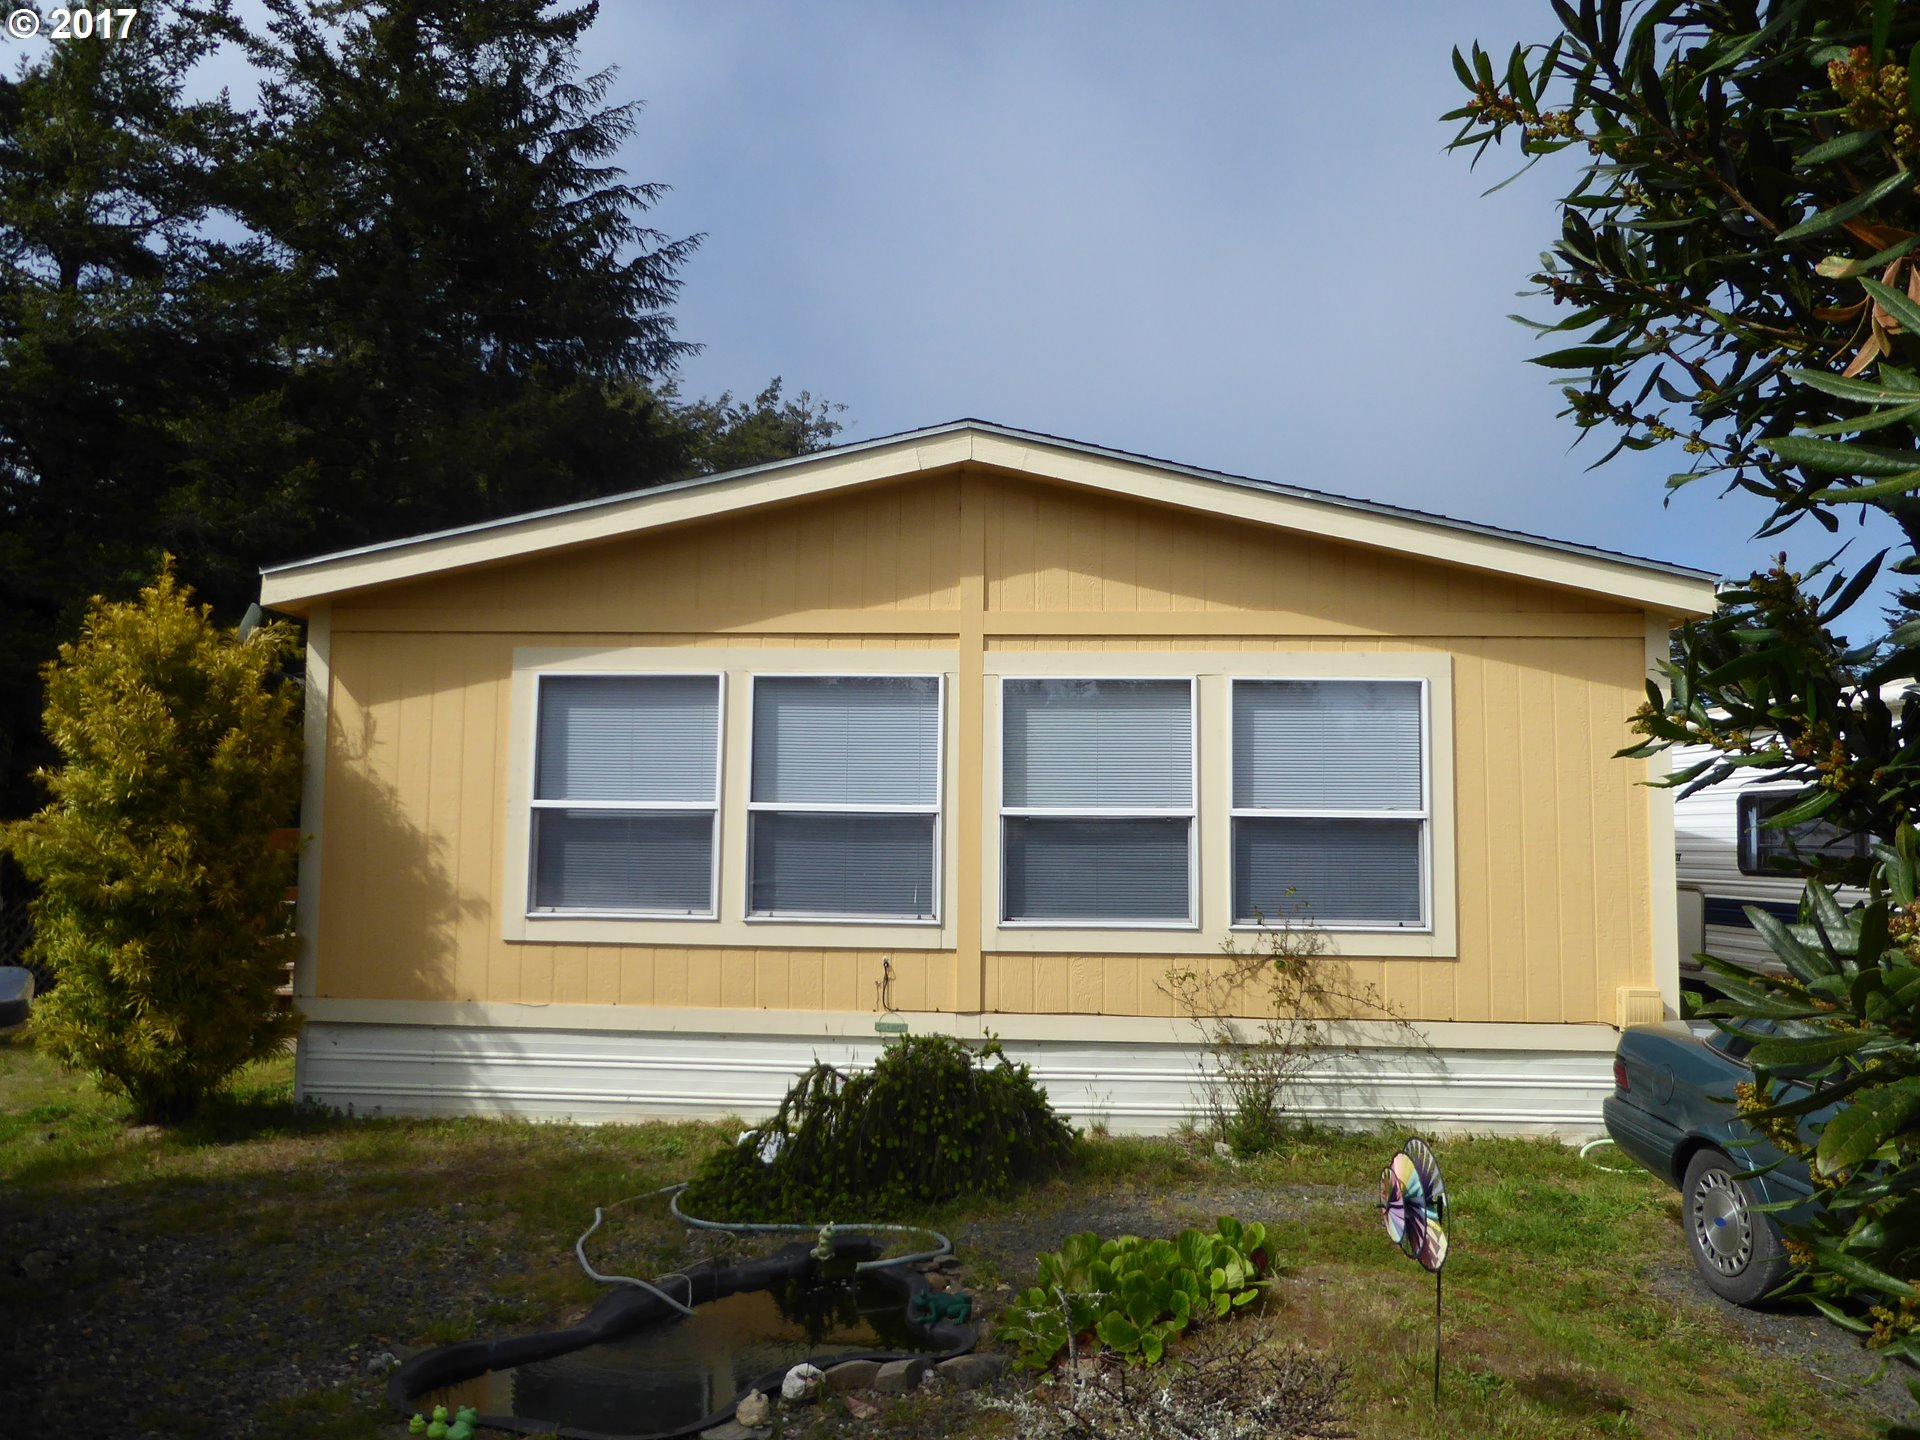 91609 PLUMMER DR Coos Bay, OR 97420 - MLS #: 17548429